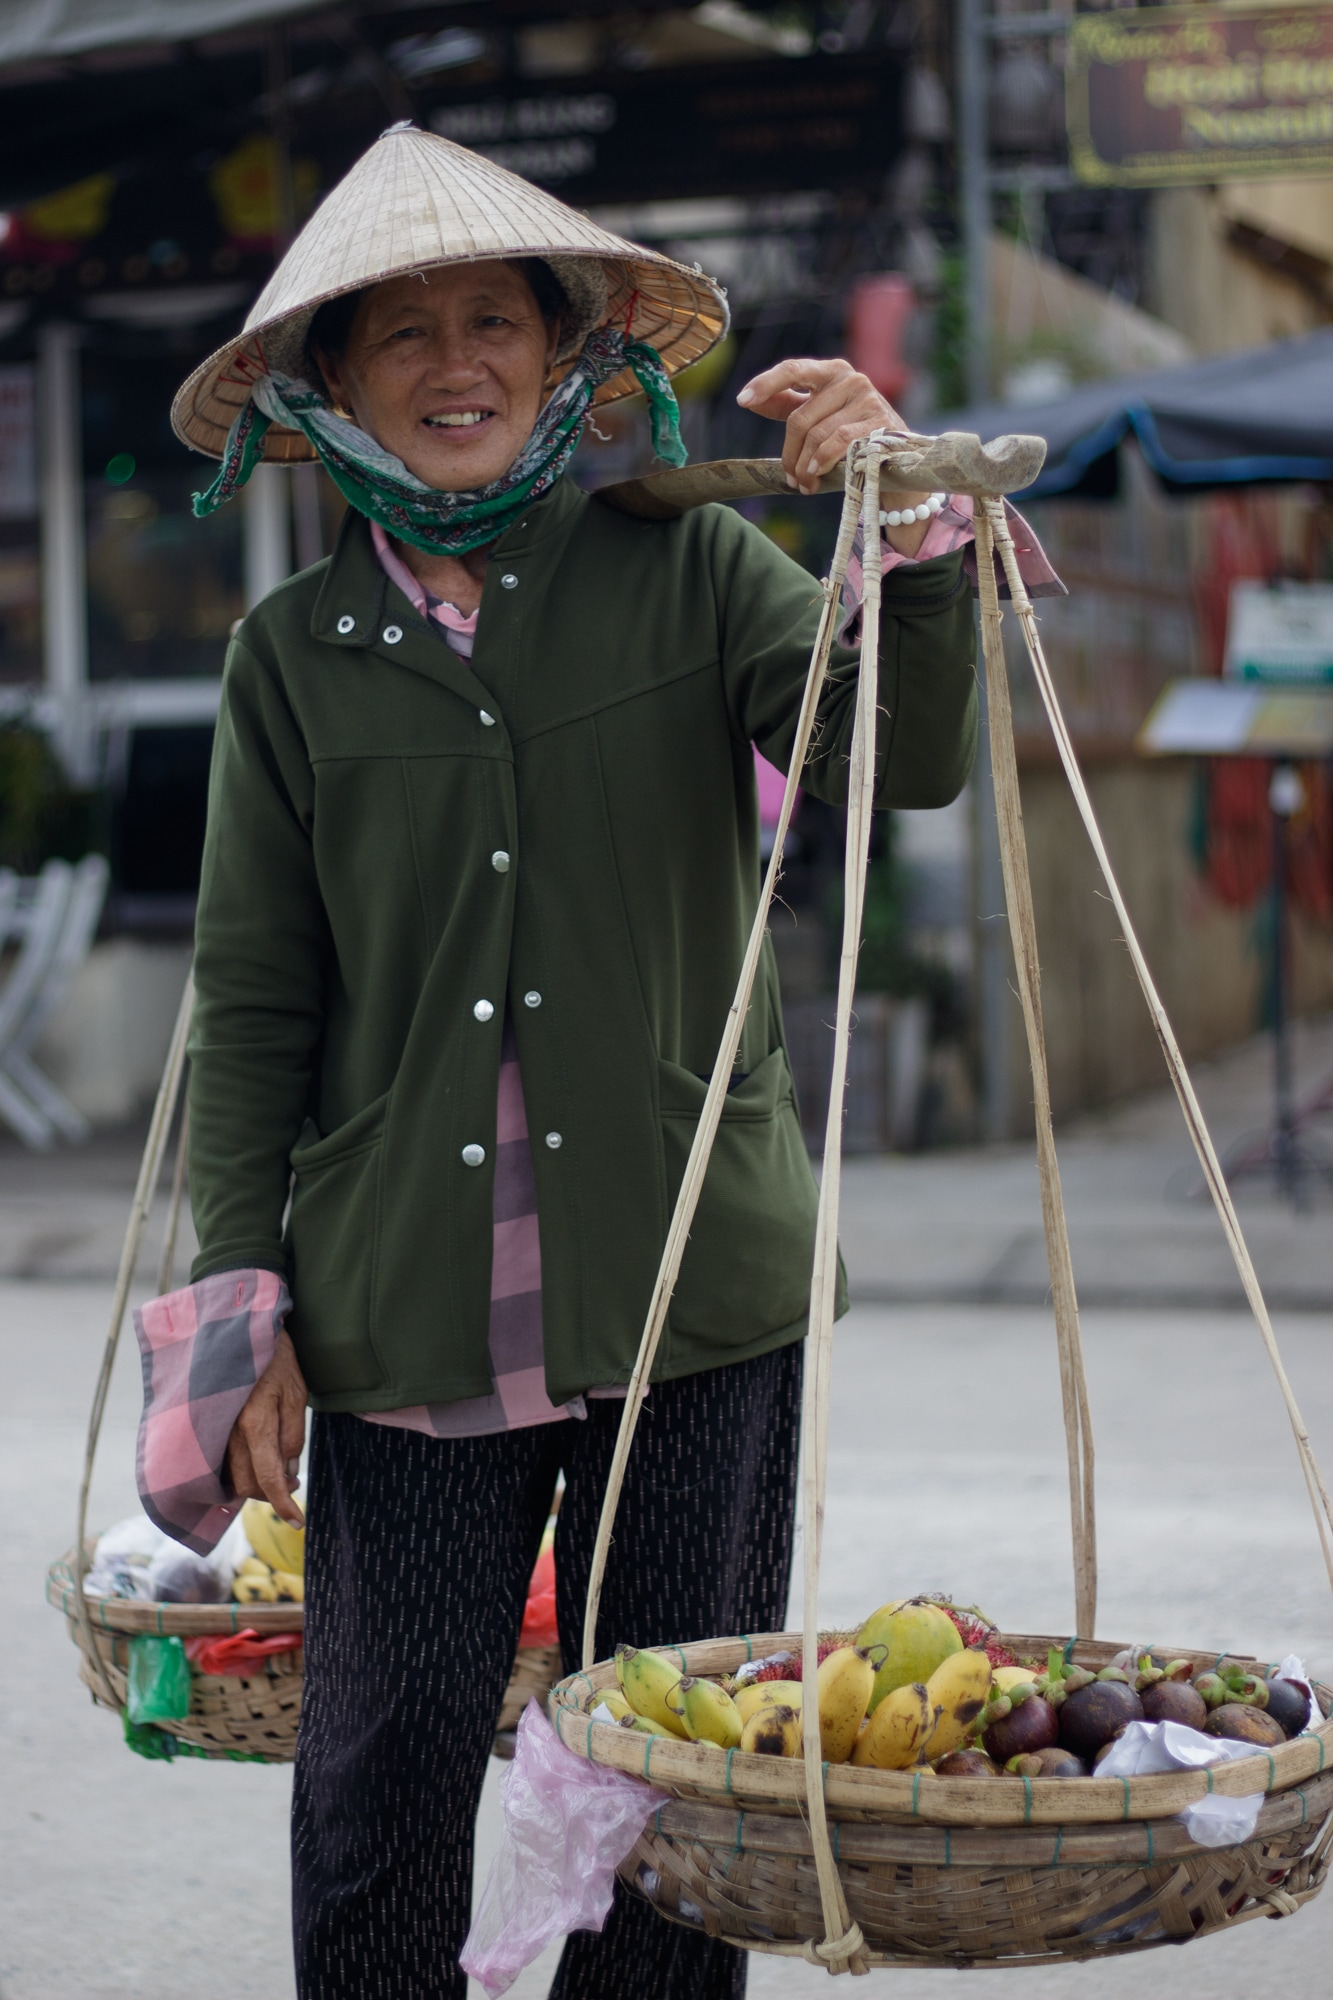 A fruit vendor poses for a picture in Hoi An, Vietnam.